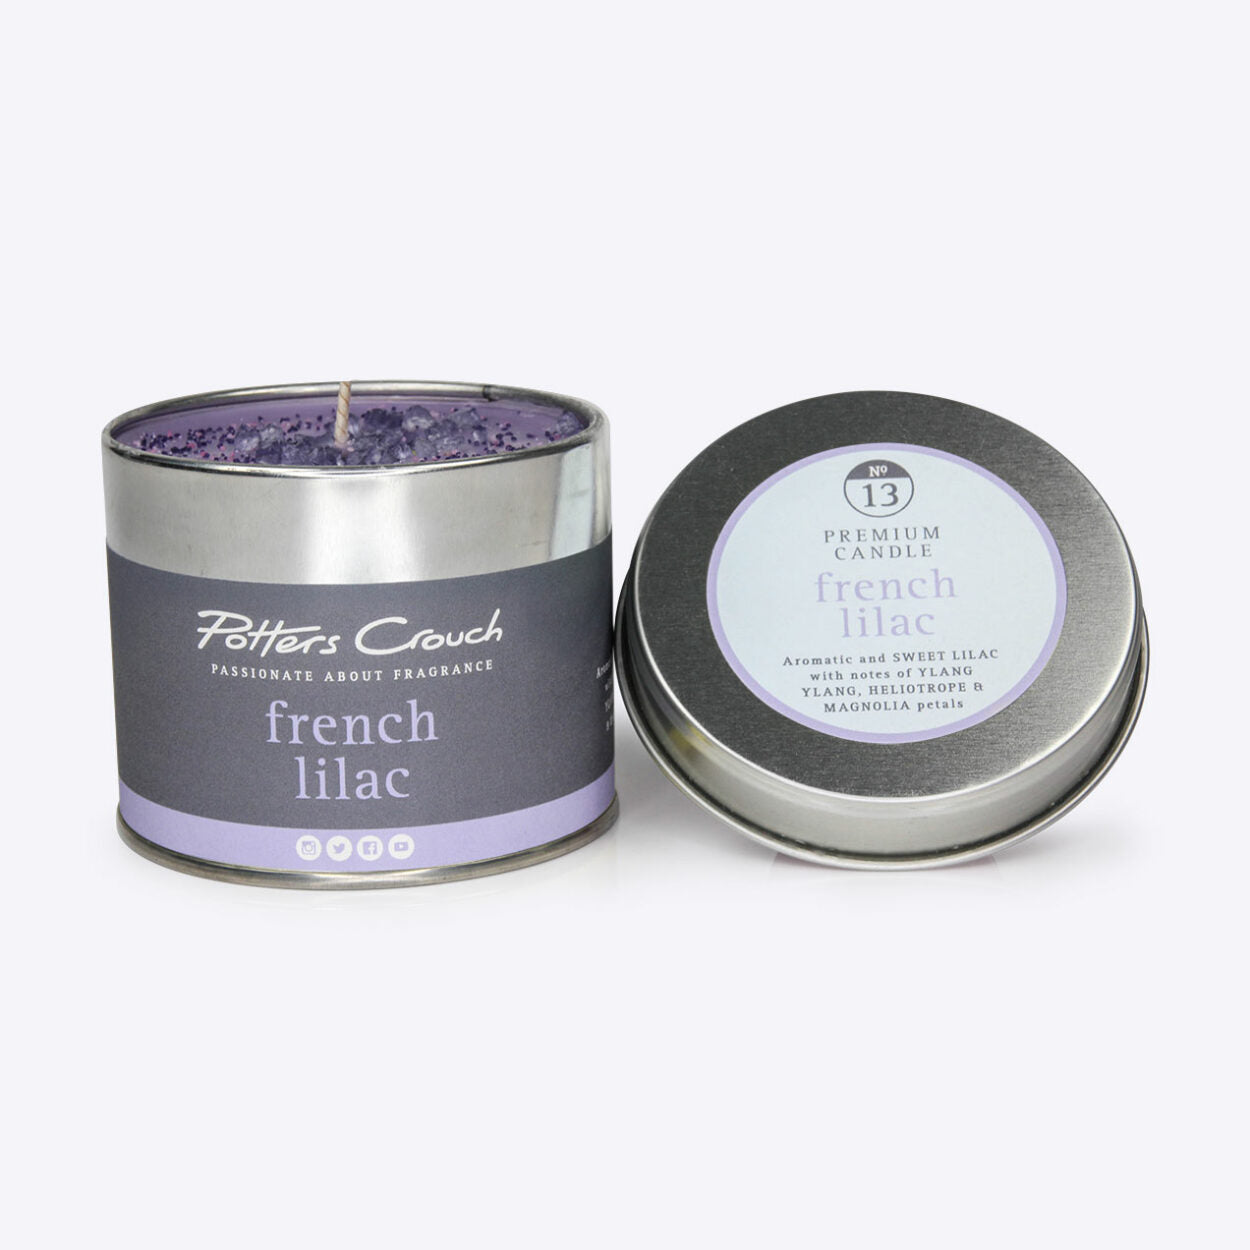 French Lilac Scented Candle in a Tin